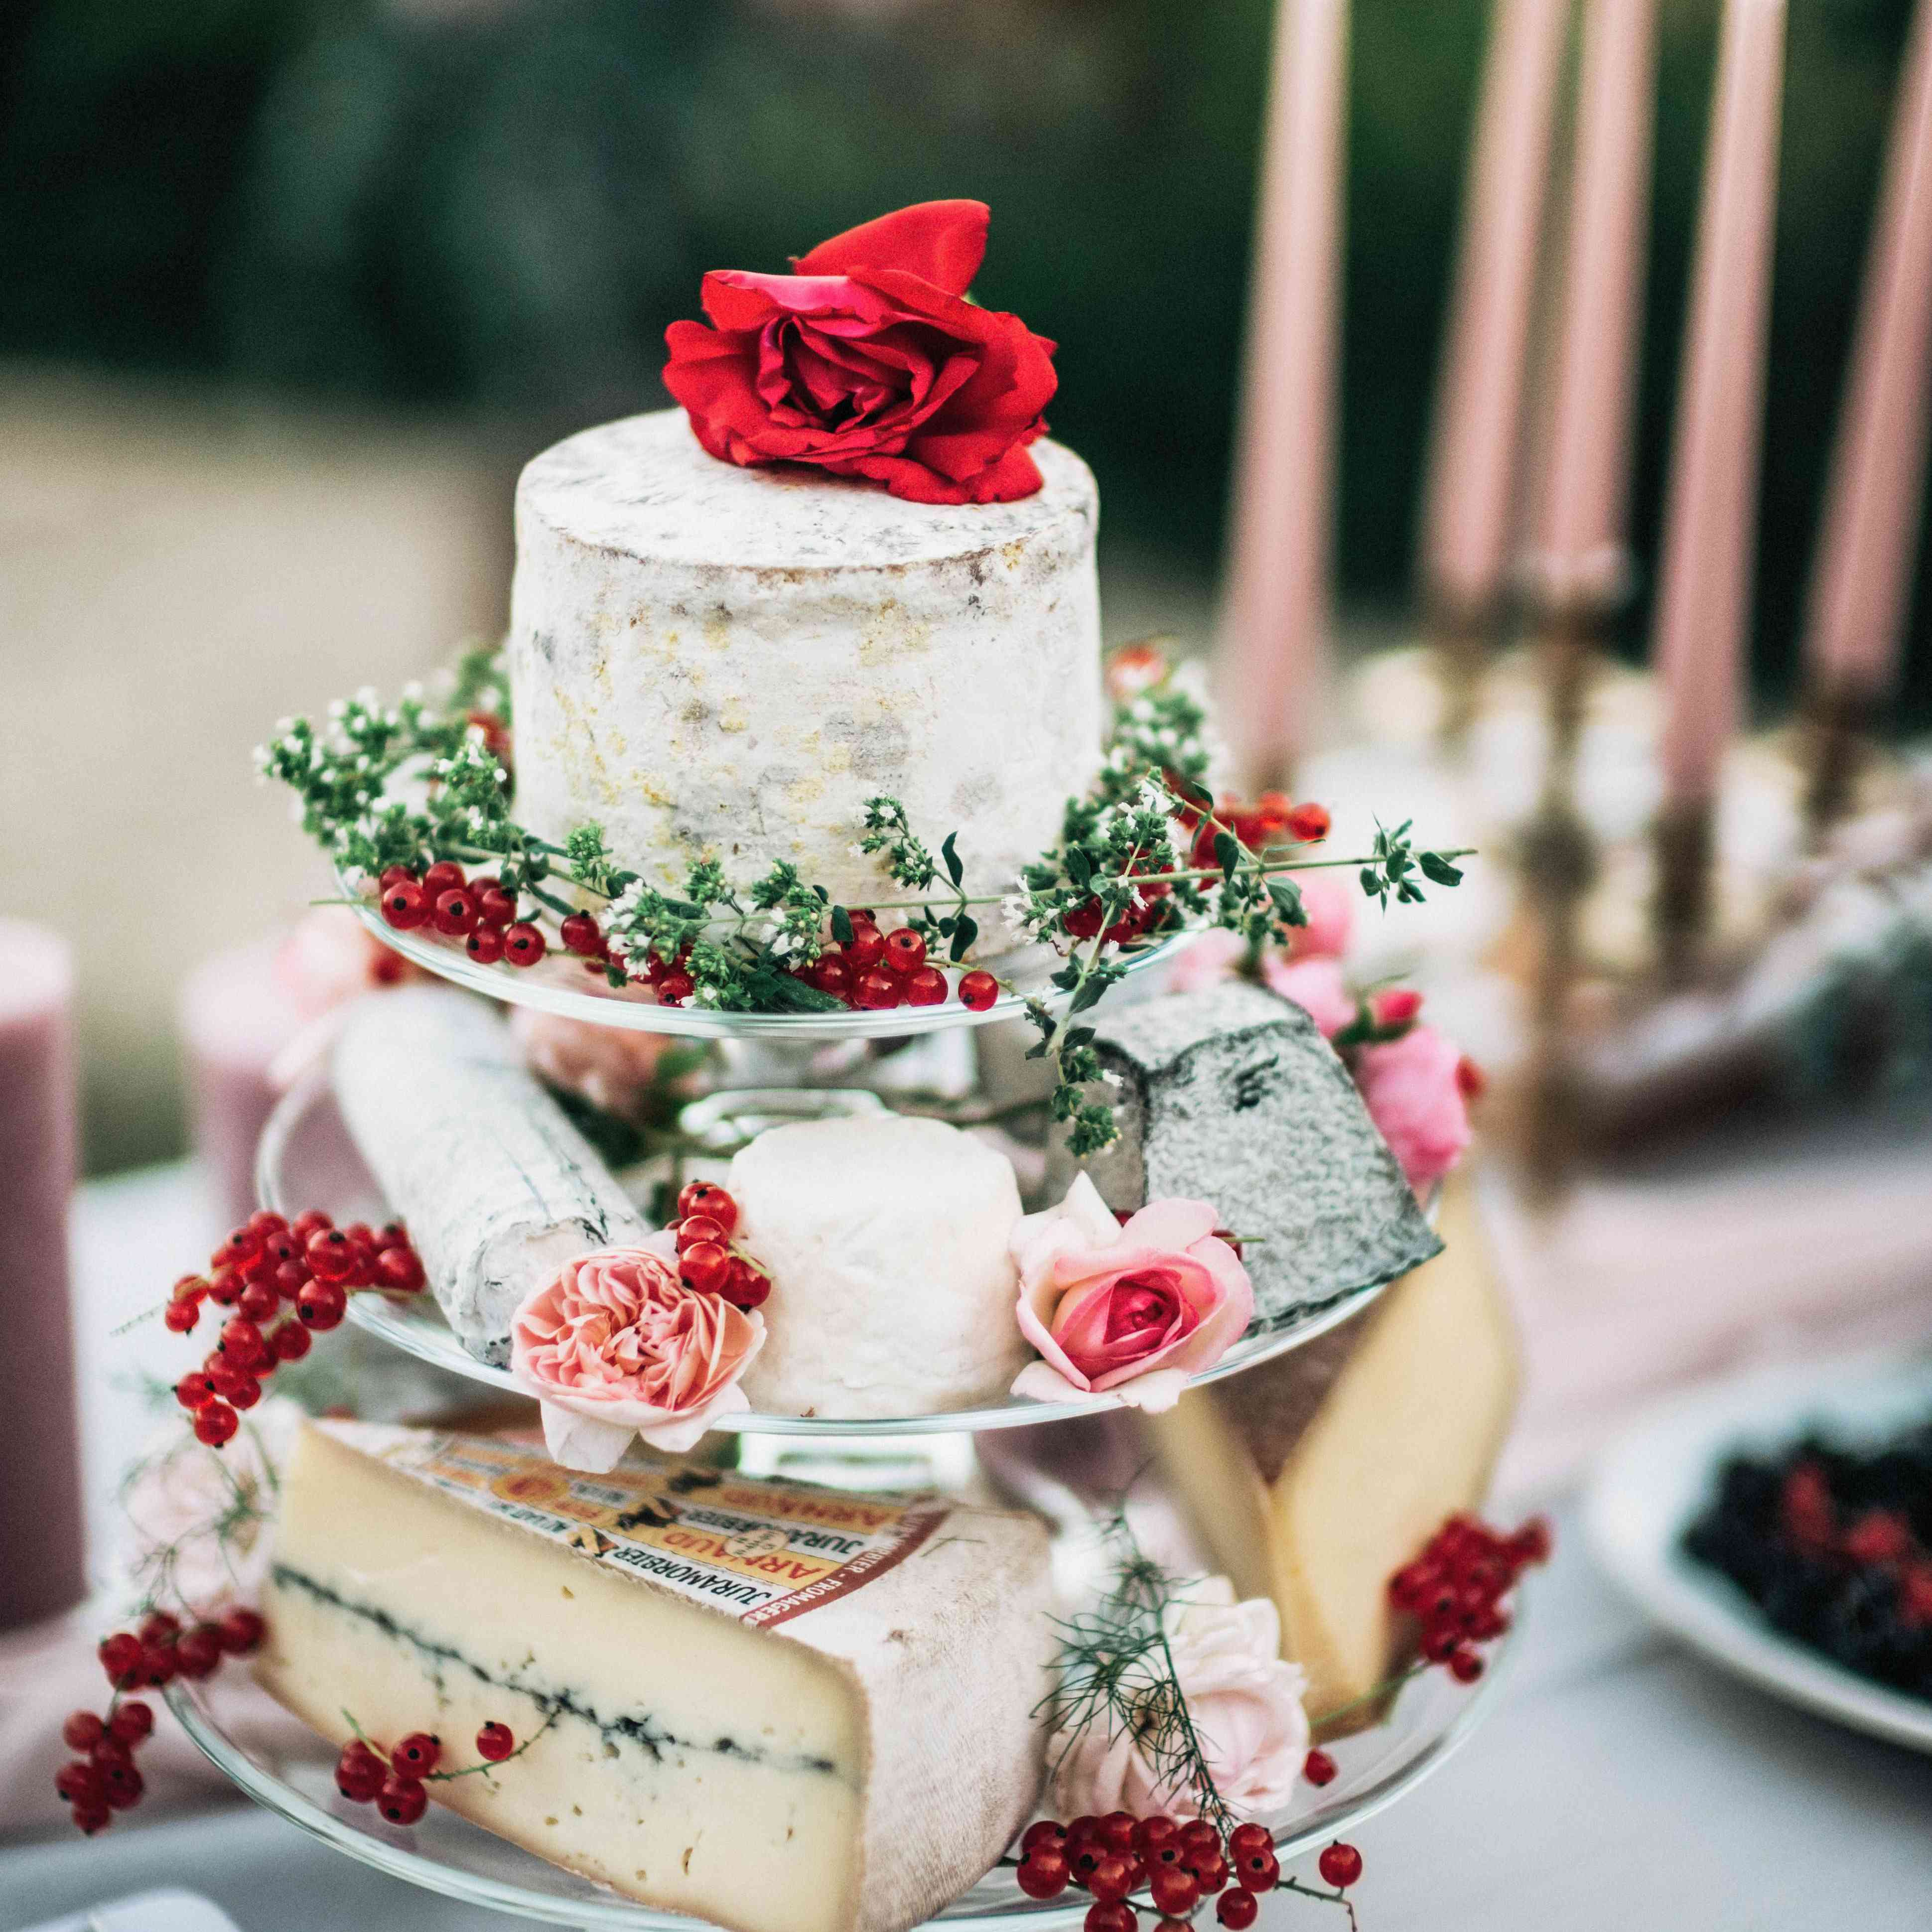 Cheese display with berries and flowers